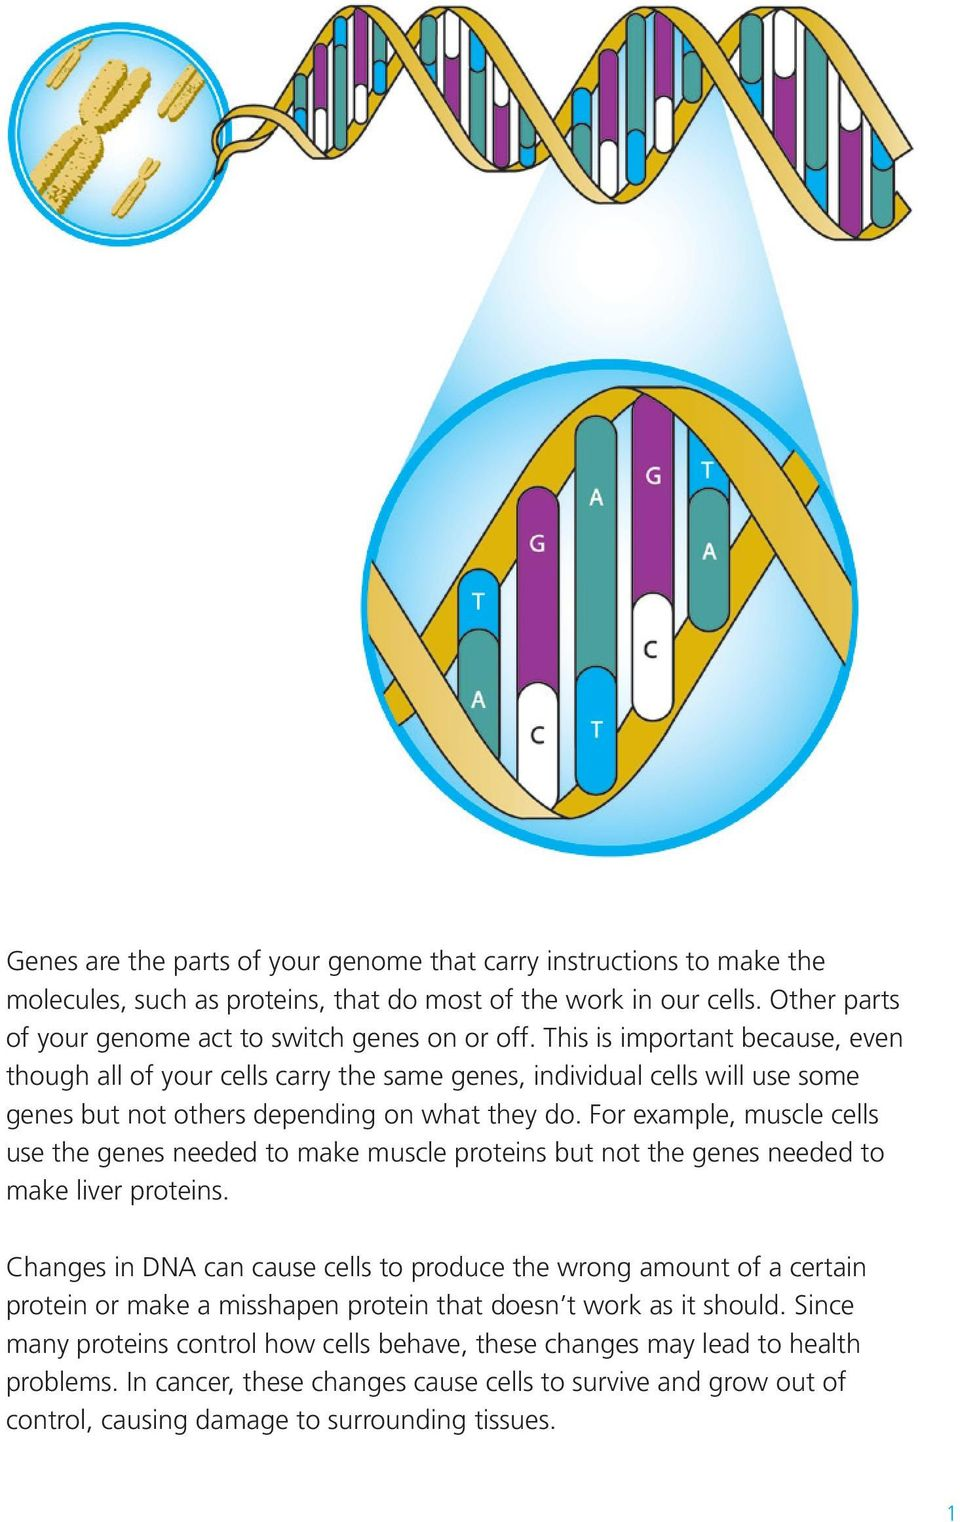 For example, muscle cells use the genes needed to make muscle proteins but not the genes needed to make liver proteins.